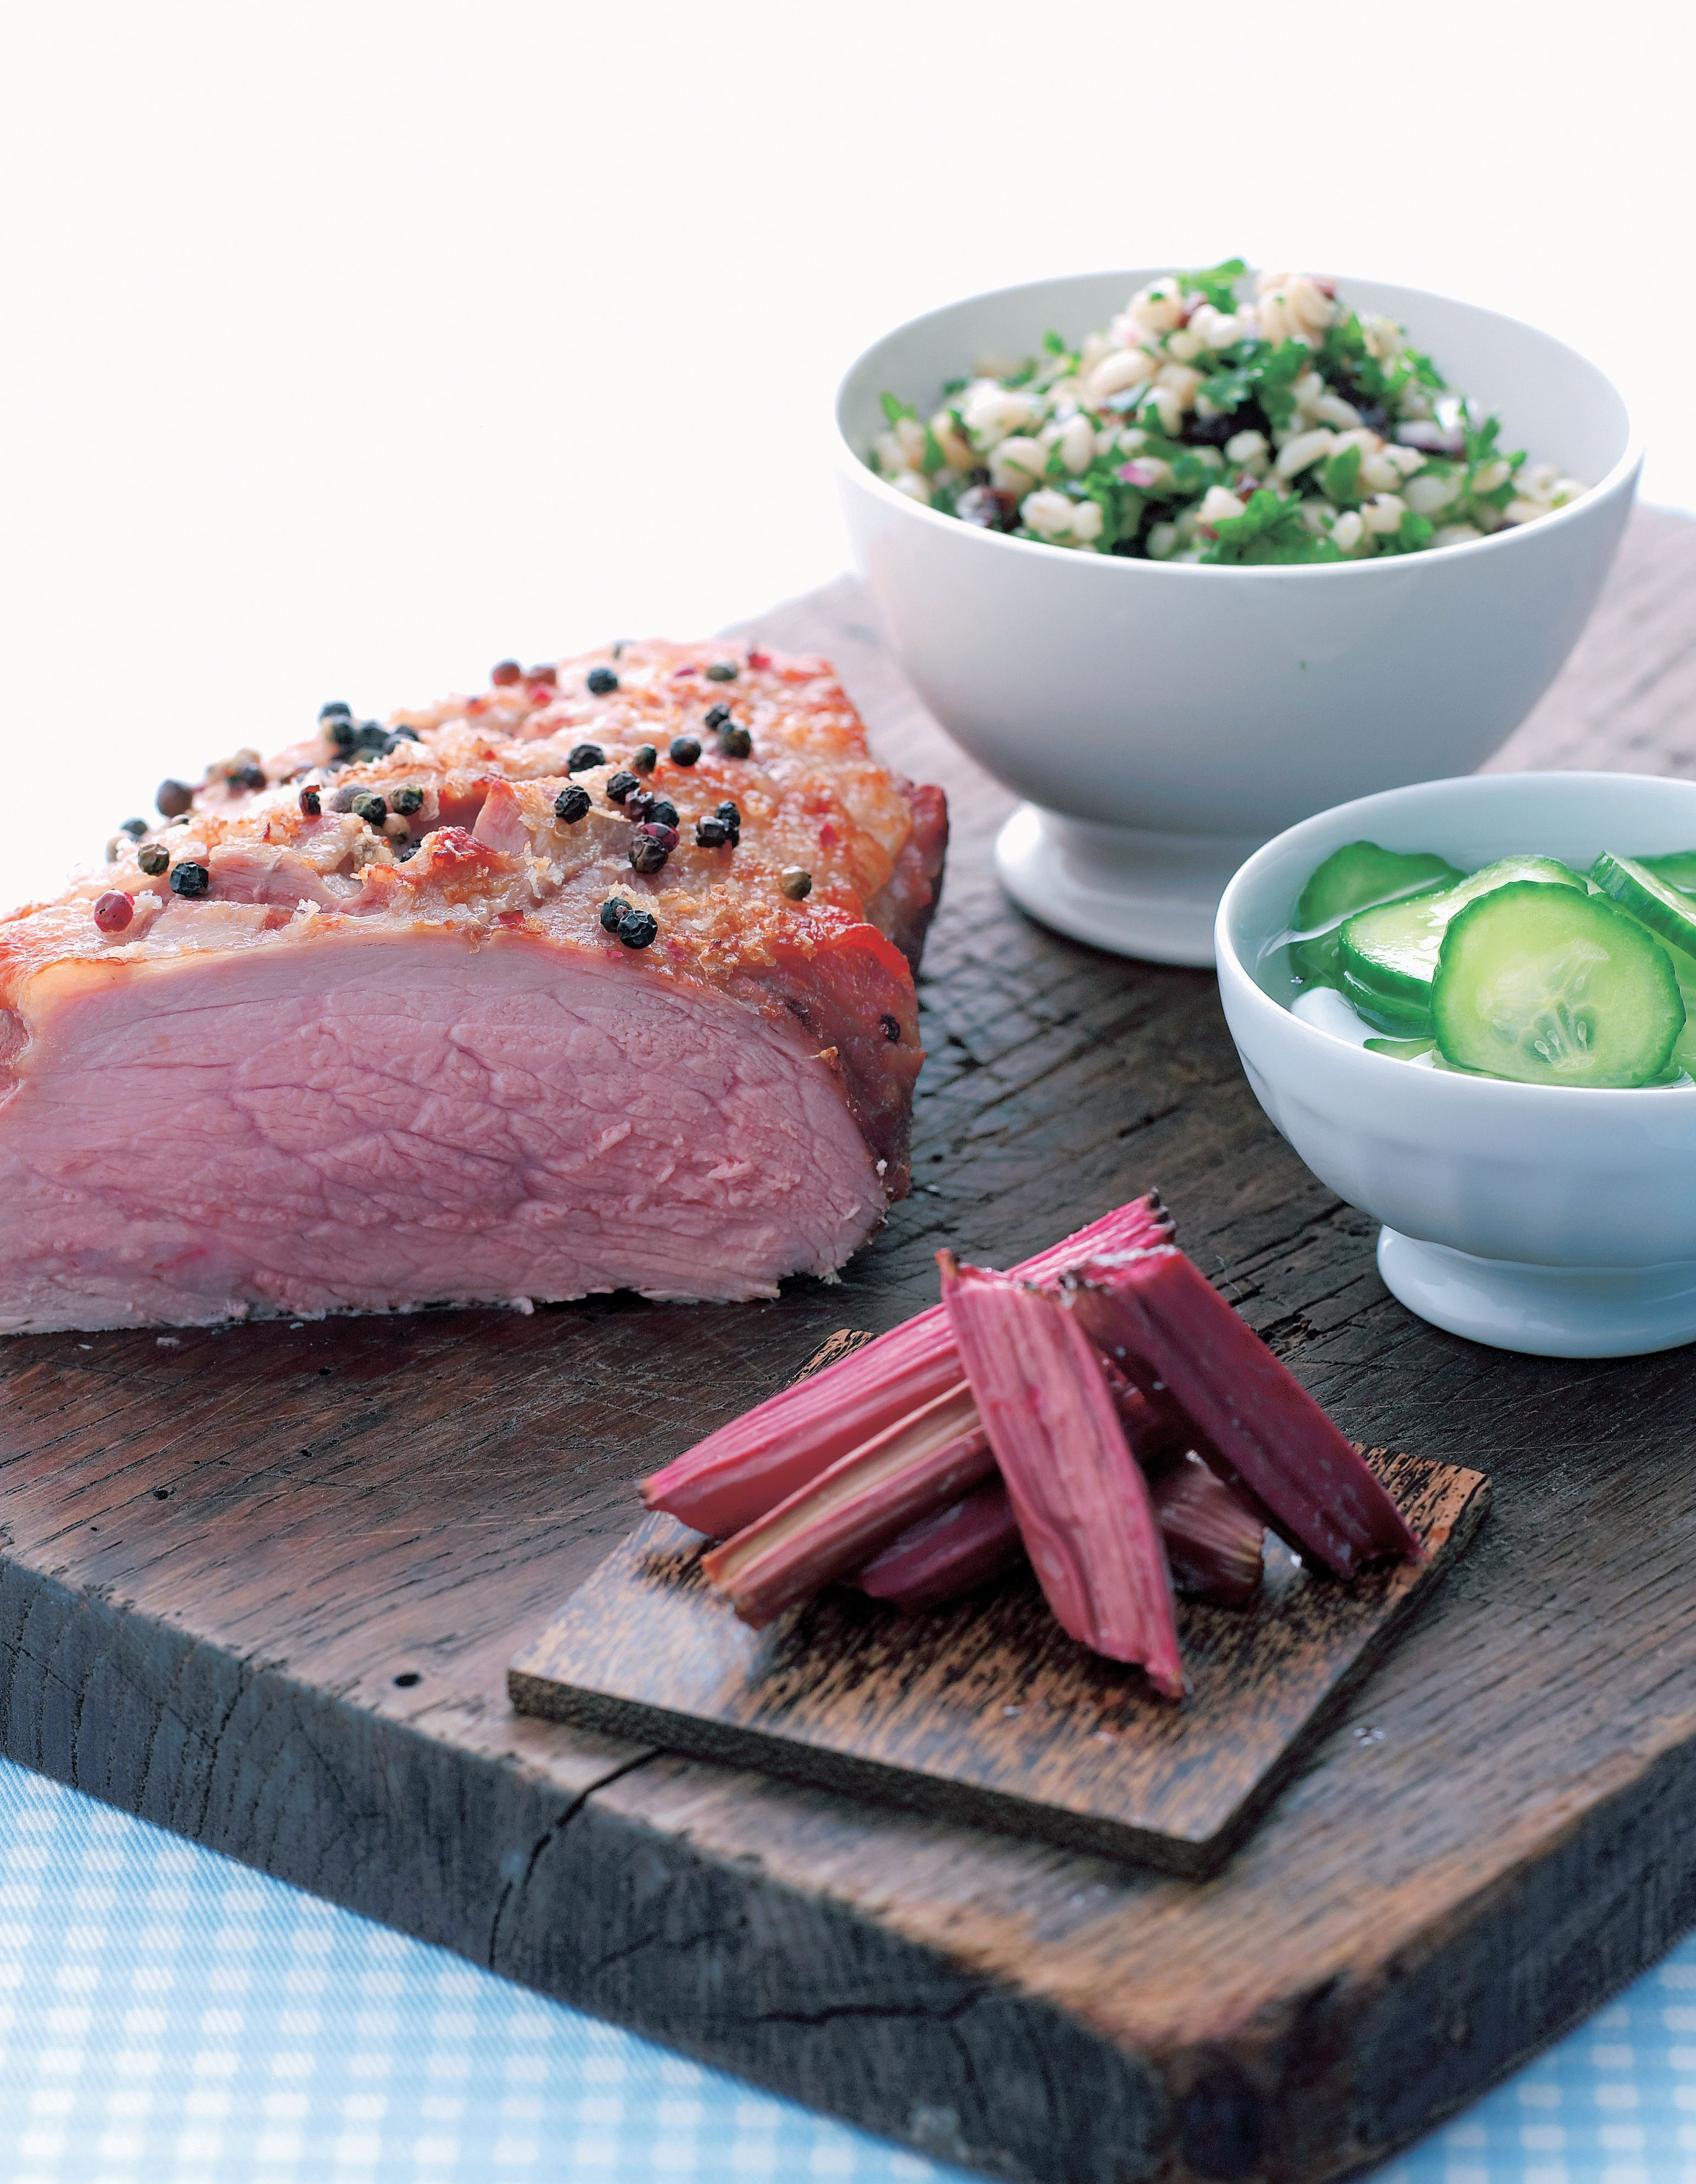 Veal with baked rhubarb, sweet and sour cucumber salad, and barley salad